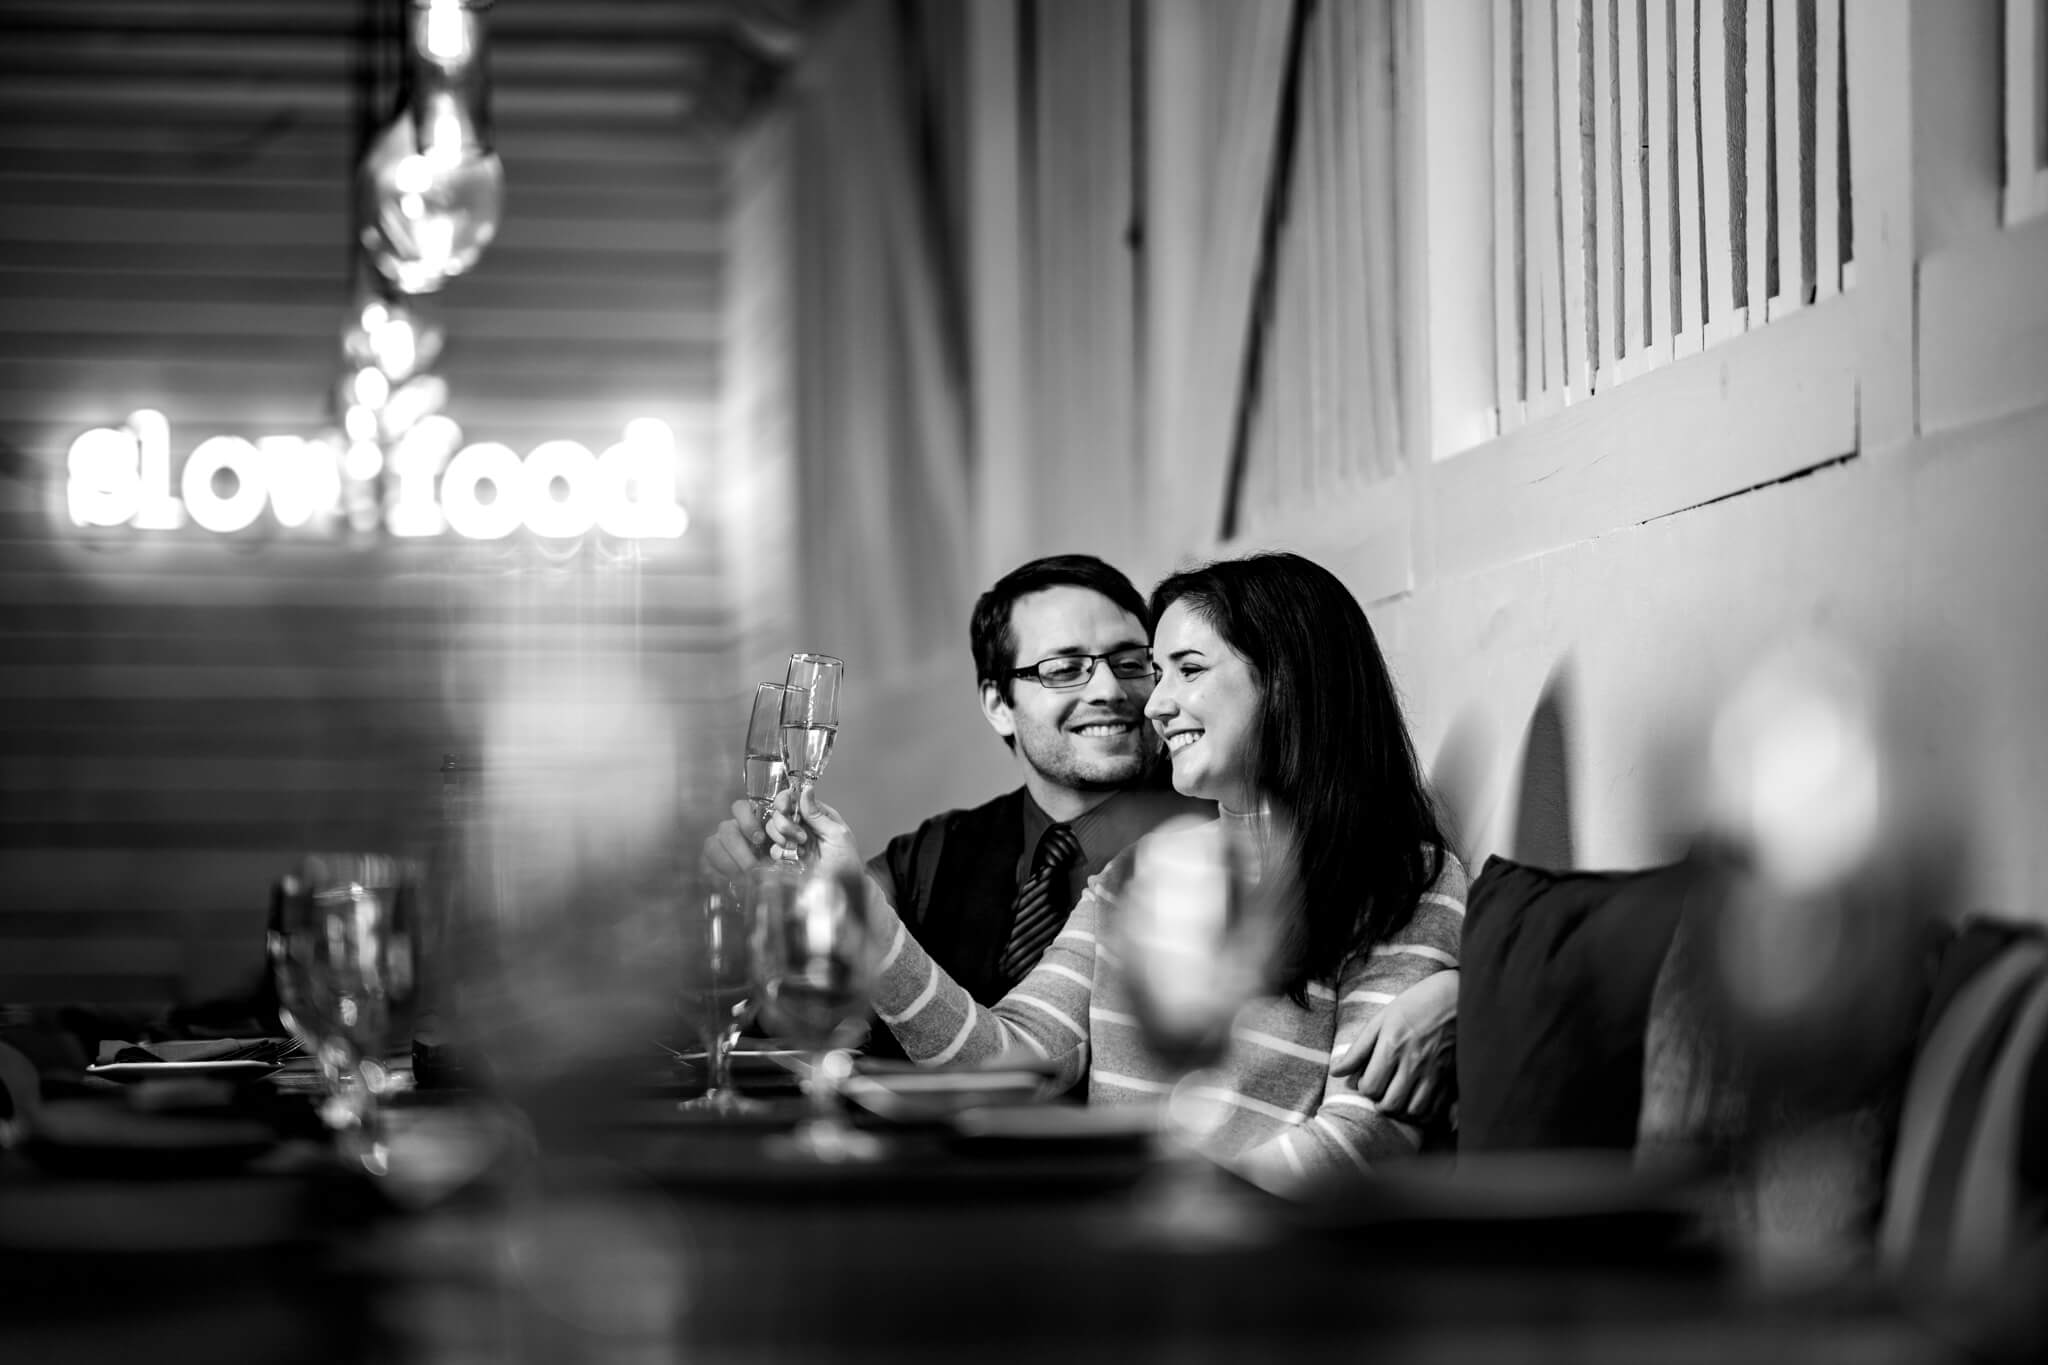 Ambar Engagement Session DC Engaged Balkan Restaurant DC Restaurant Engagement Session Winter Engagement Session-6.jpg